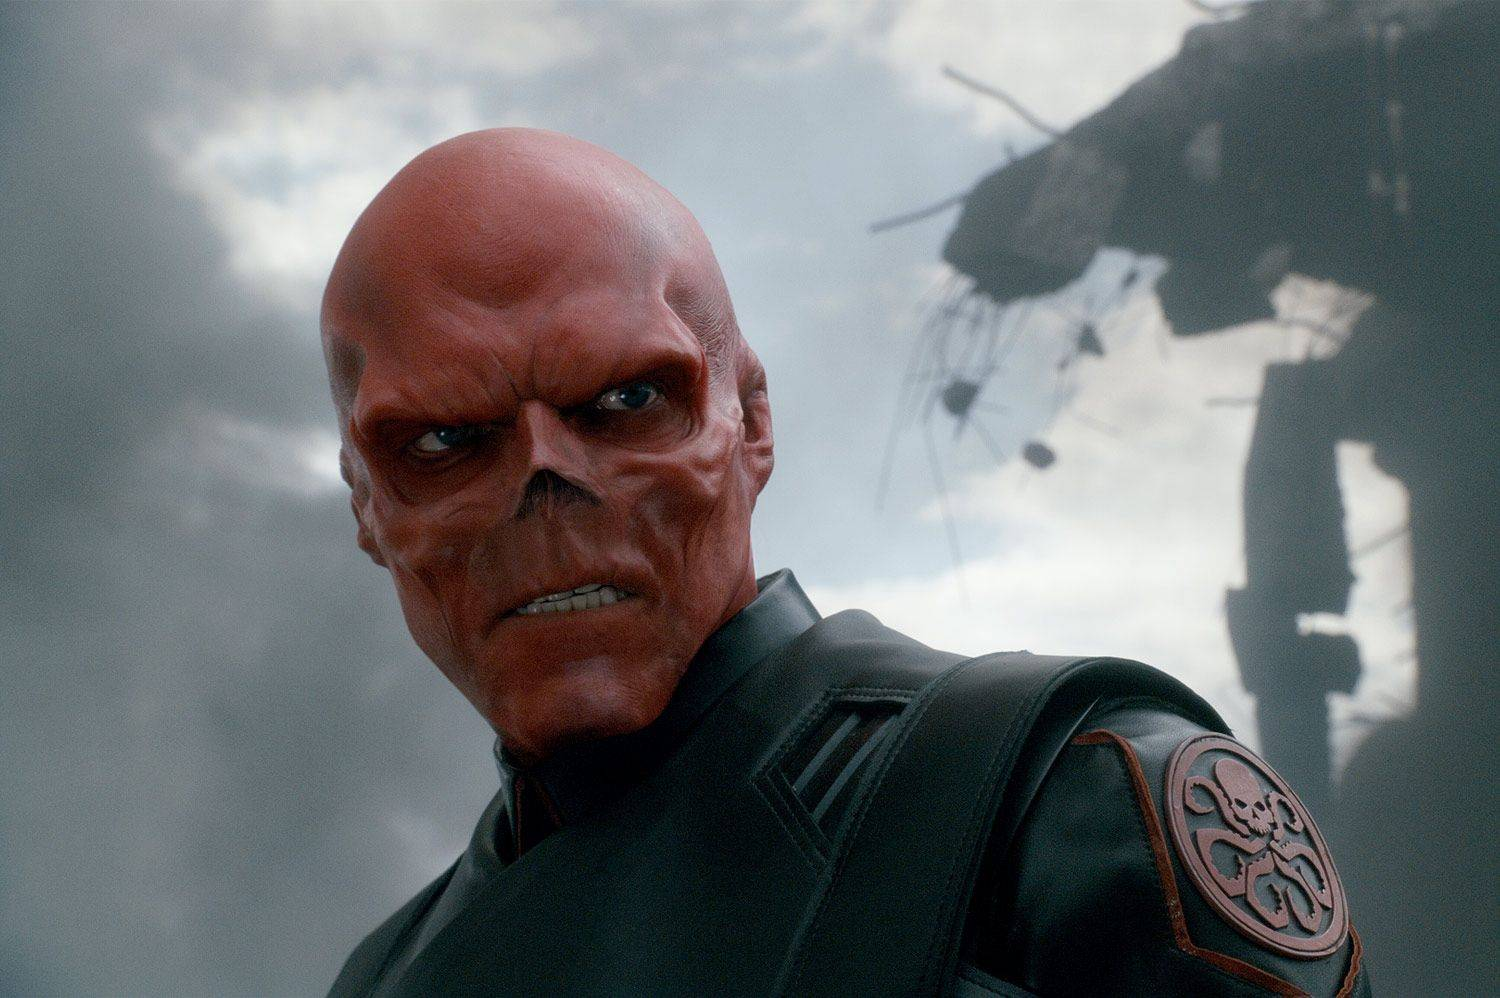 Photo of 9 Memes On Red Skull That Makes Him The Goofiest Villain in the MCU